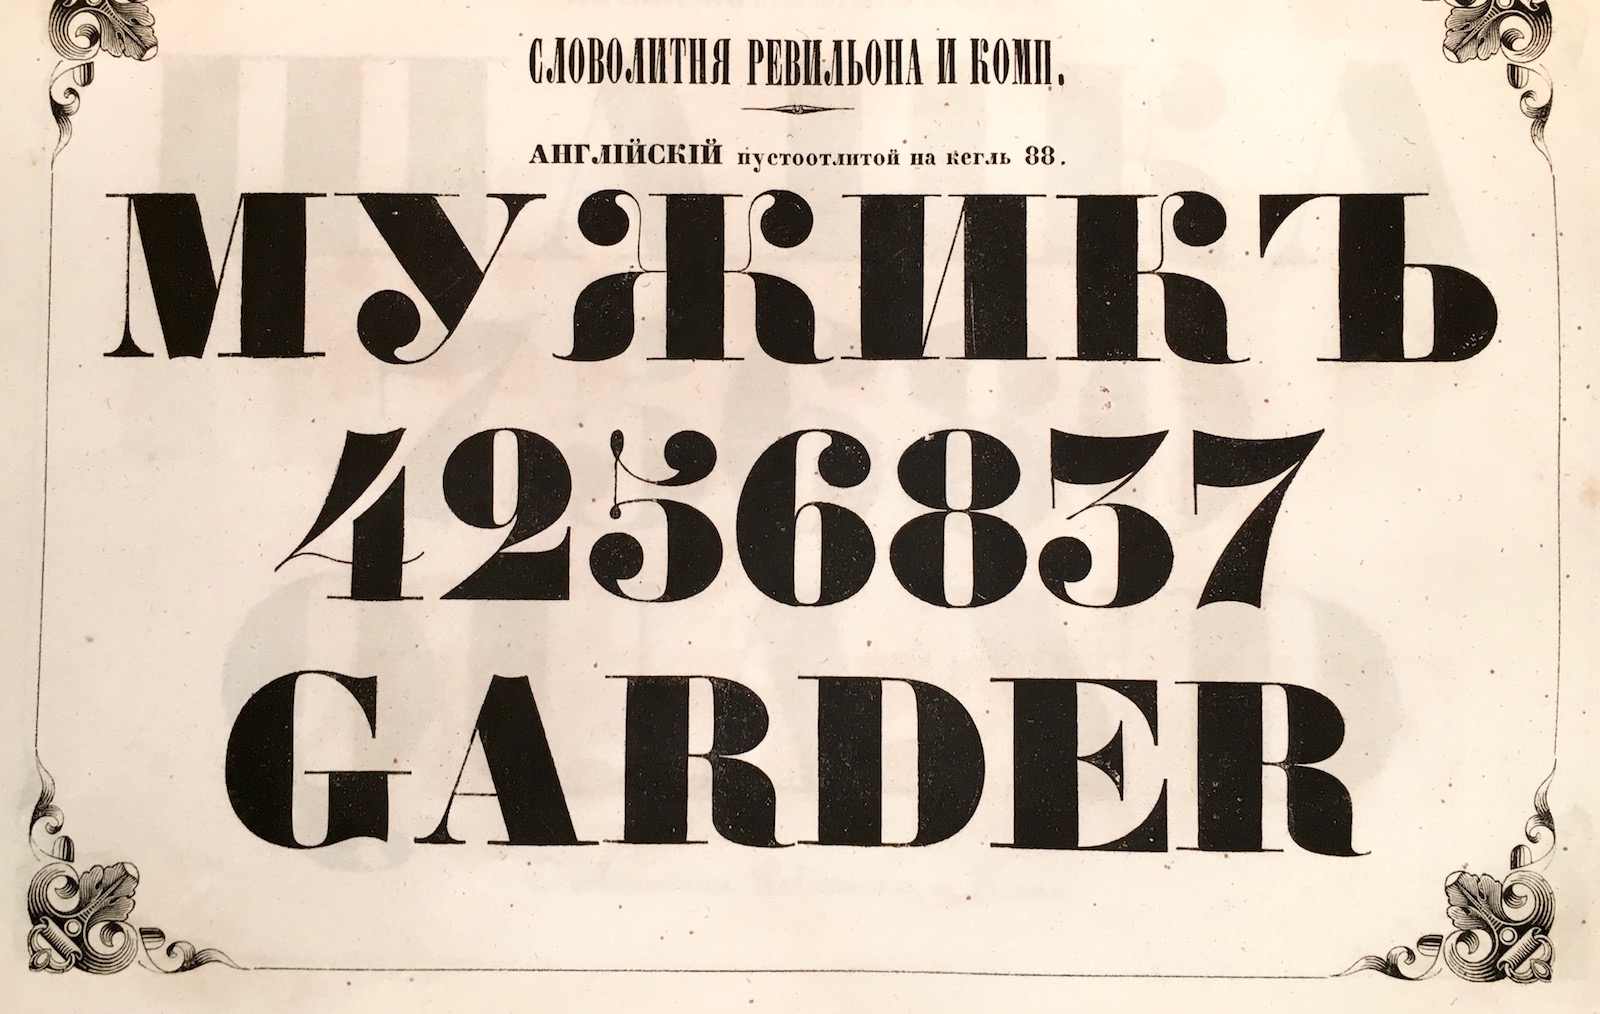 Specimen of Cyrillic types (1841) showing numerals similar to those of Gras Vibert. From typofonderie.com.